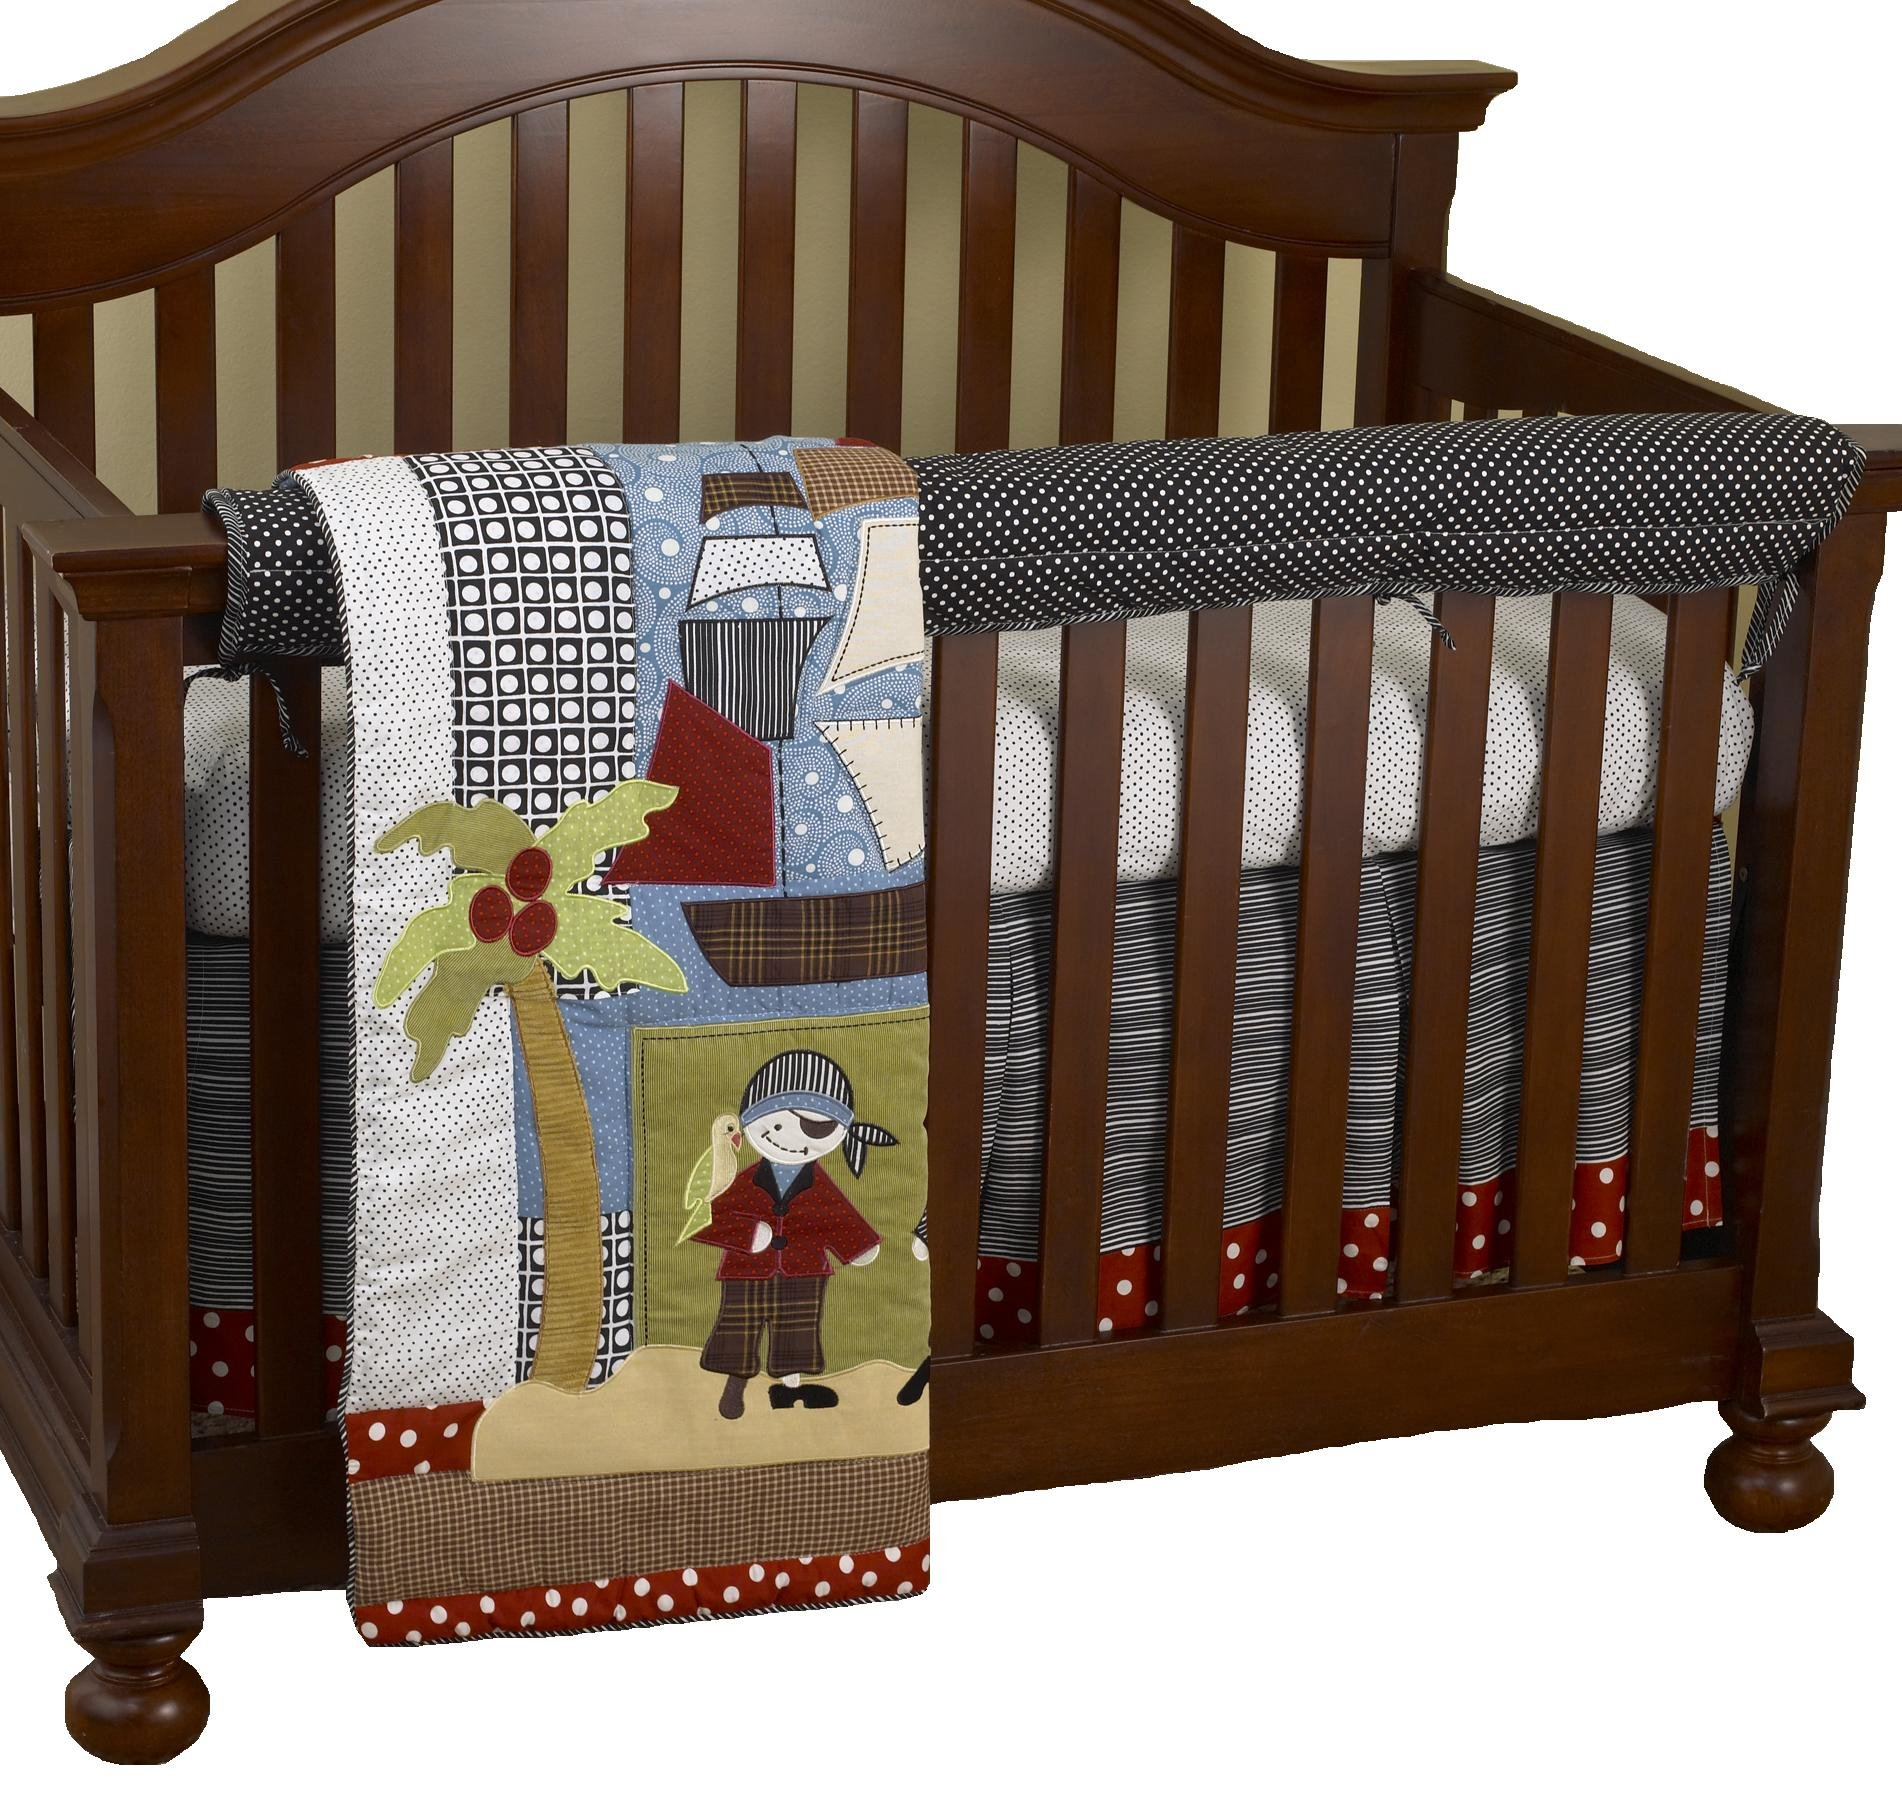 Cotton Tale Designs Front Crib Rail Cover Up Set, Pirates Cove by Cotton Tale Designs